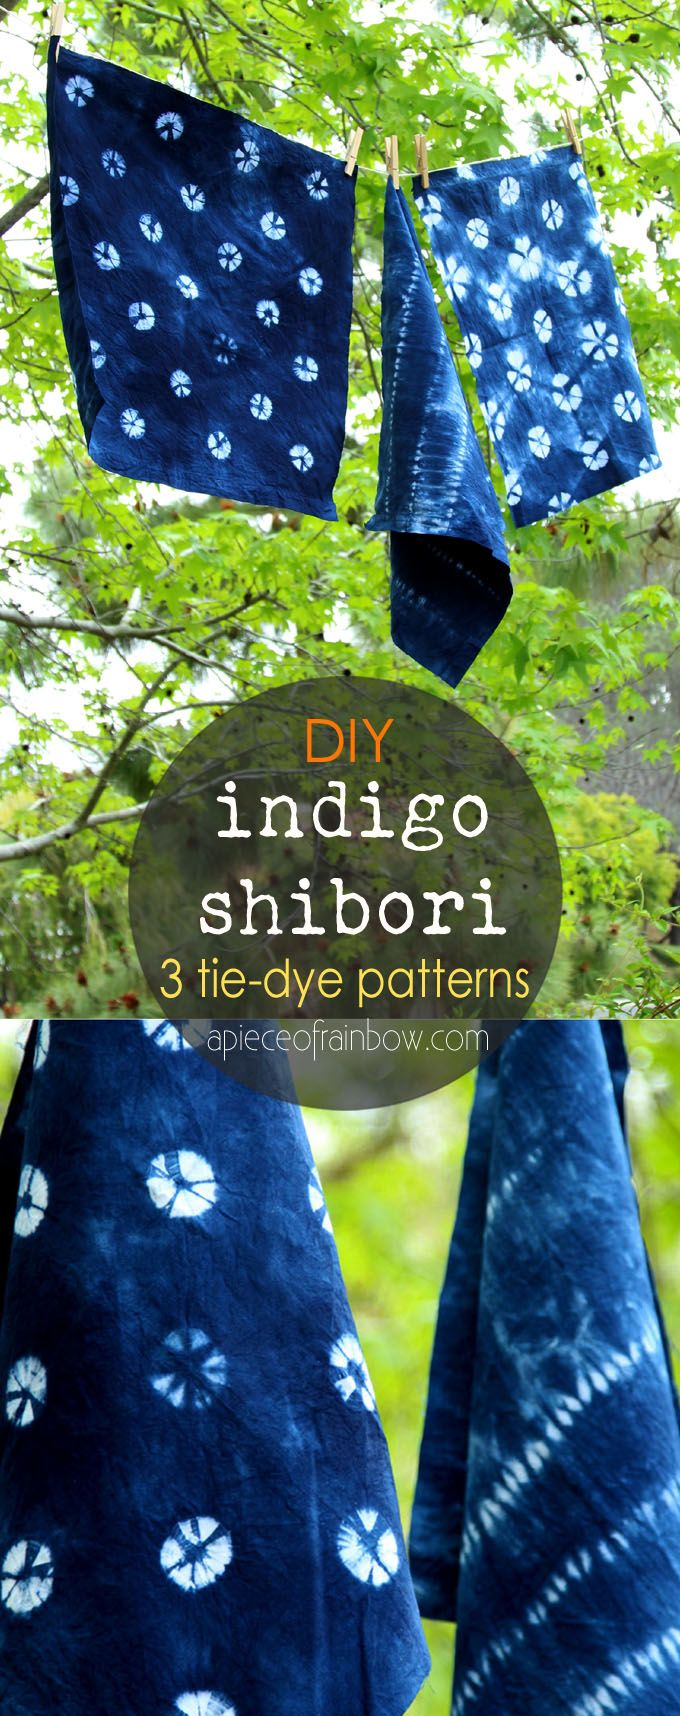 17 best ideas about tie dye patterns on pinterest tie for Custom tie dye shirts no minimum